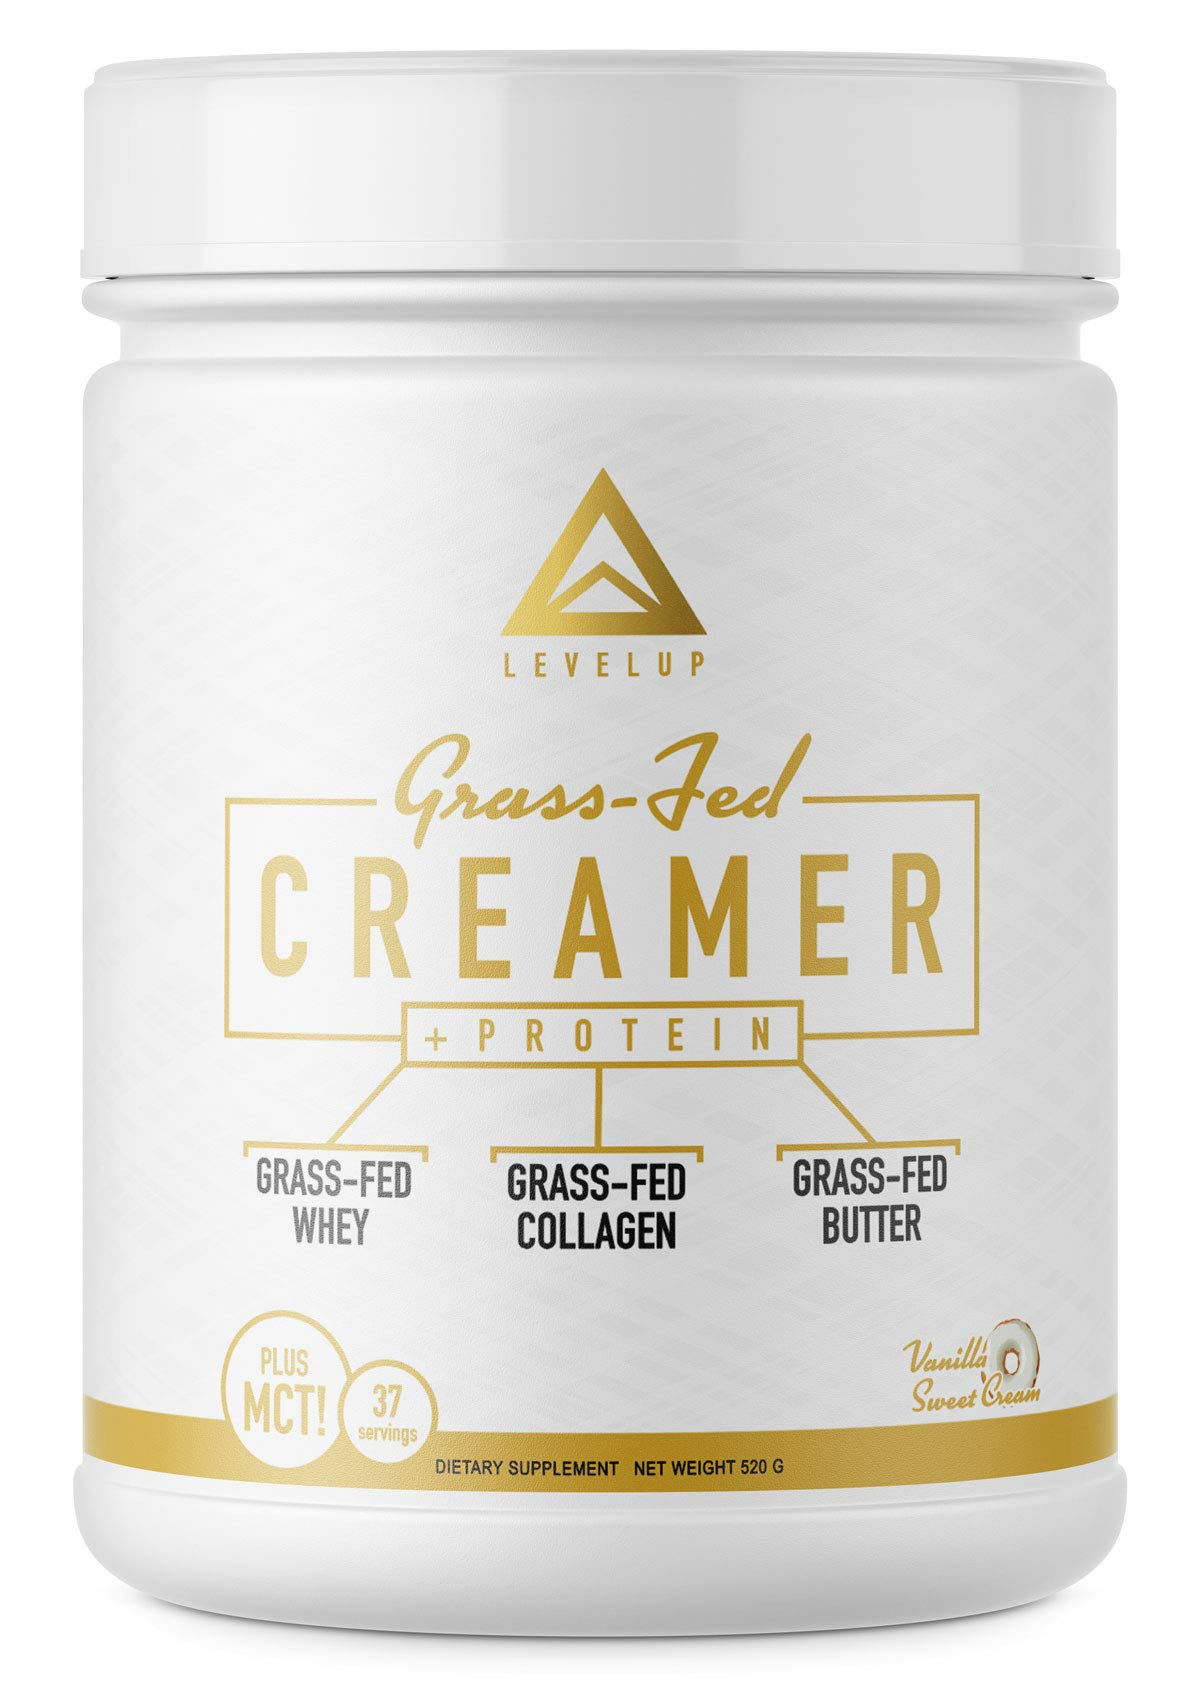 Keto Creamer: [Grass Fed Formula] with Irish Butter | Collagen Protein | Pure C8 MCT Oil | The Ultimate Keto Bomb Creamer | by LevelUp® (Vanilla Sweet Cream)